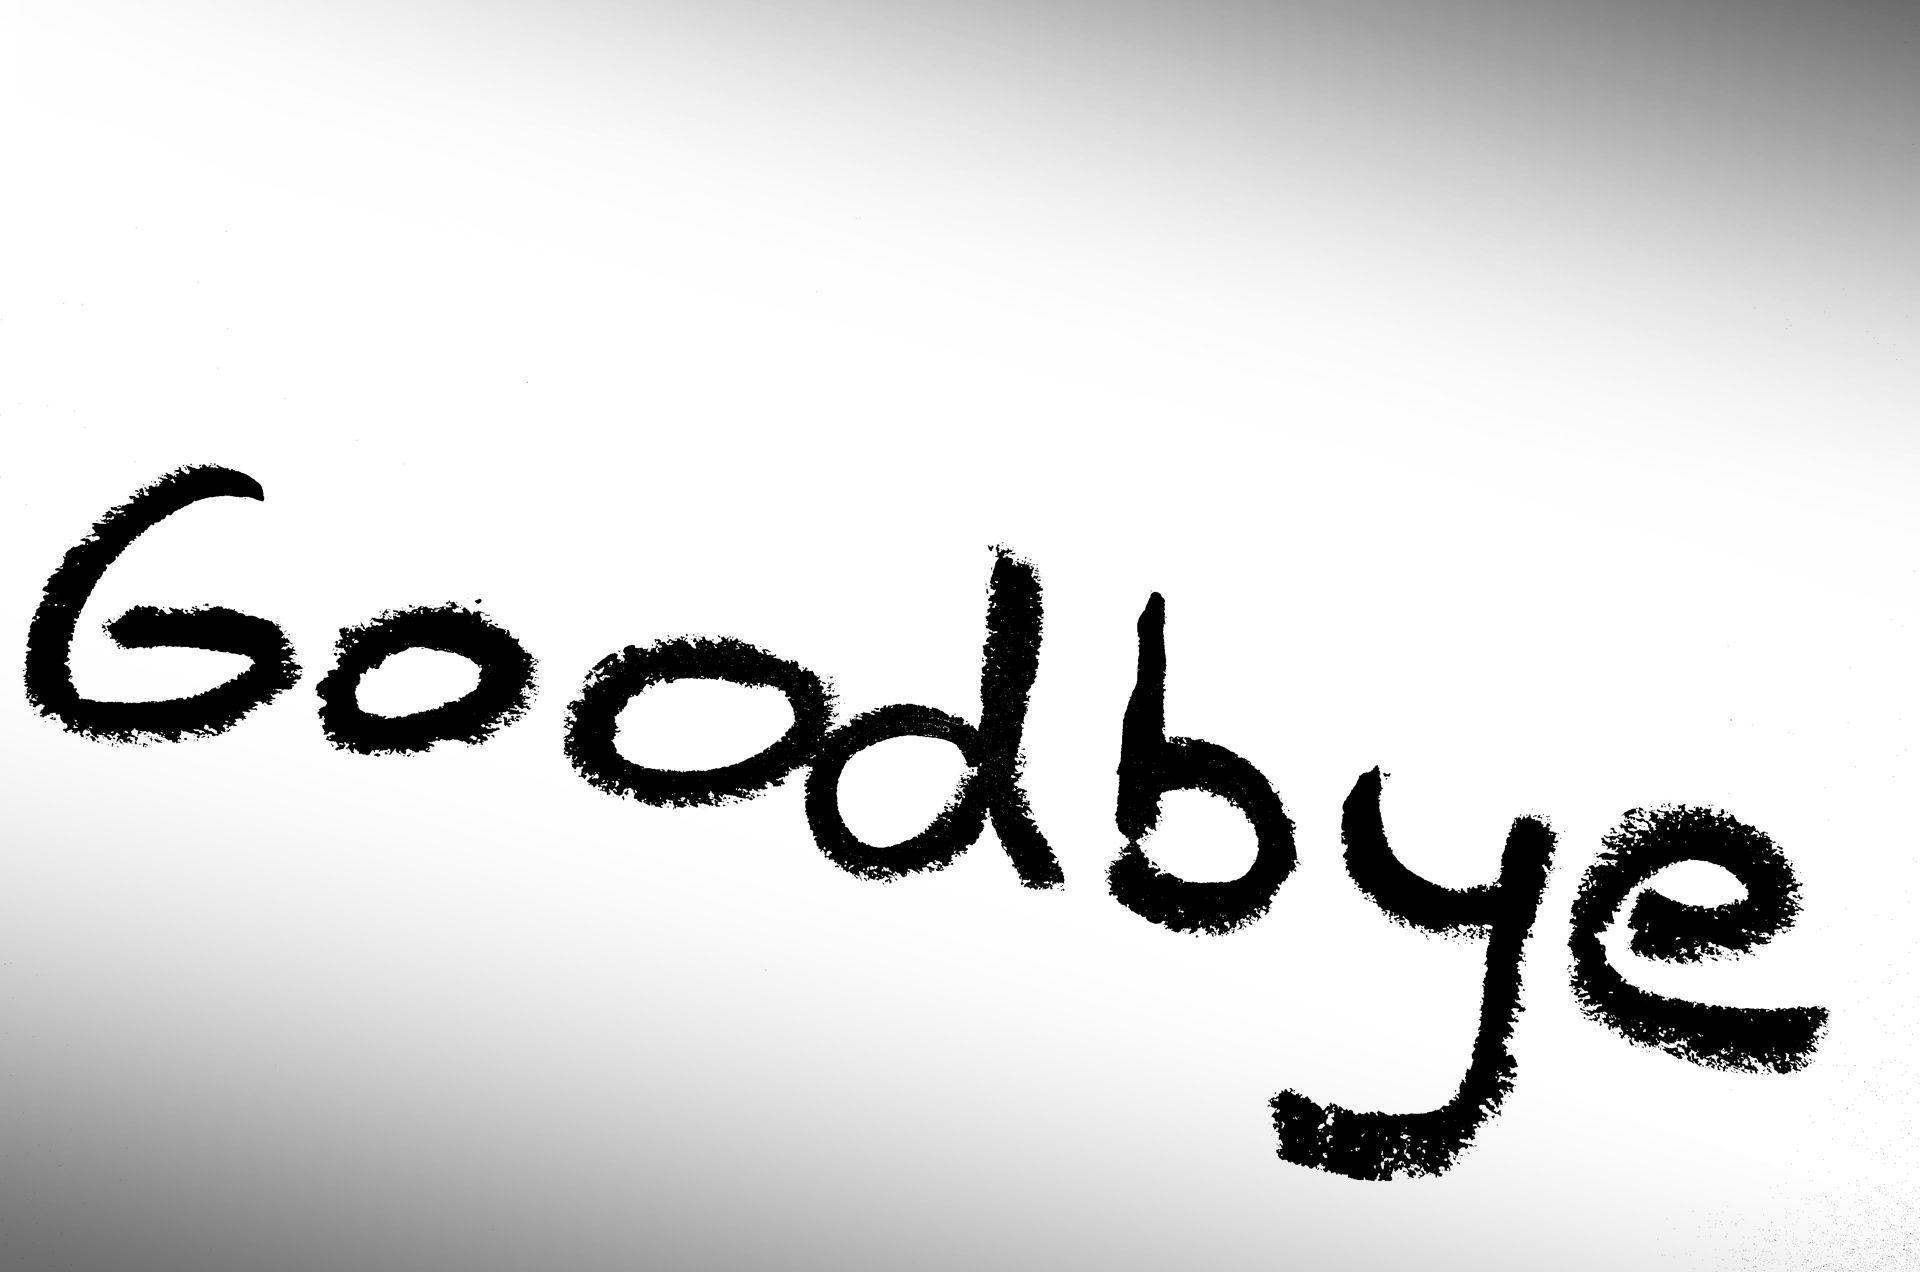 how to play to good at good byes